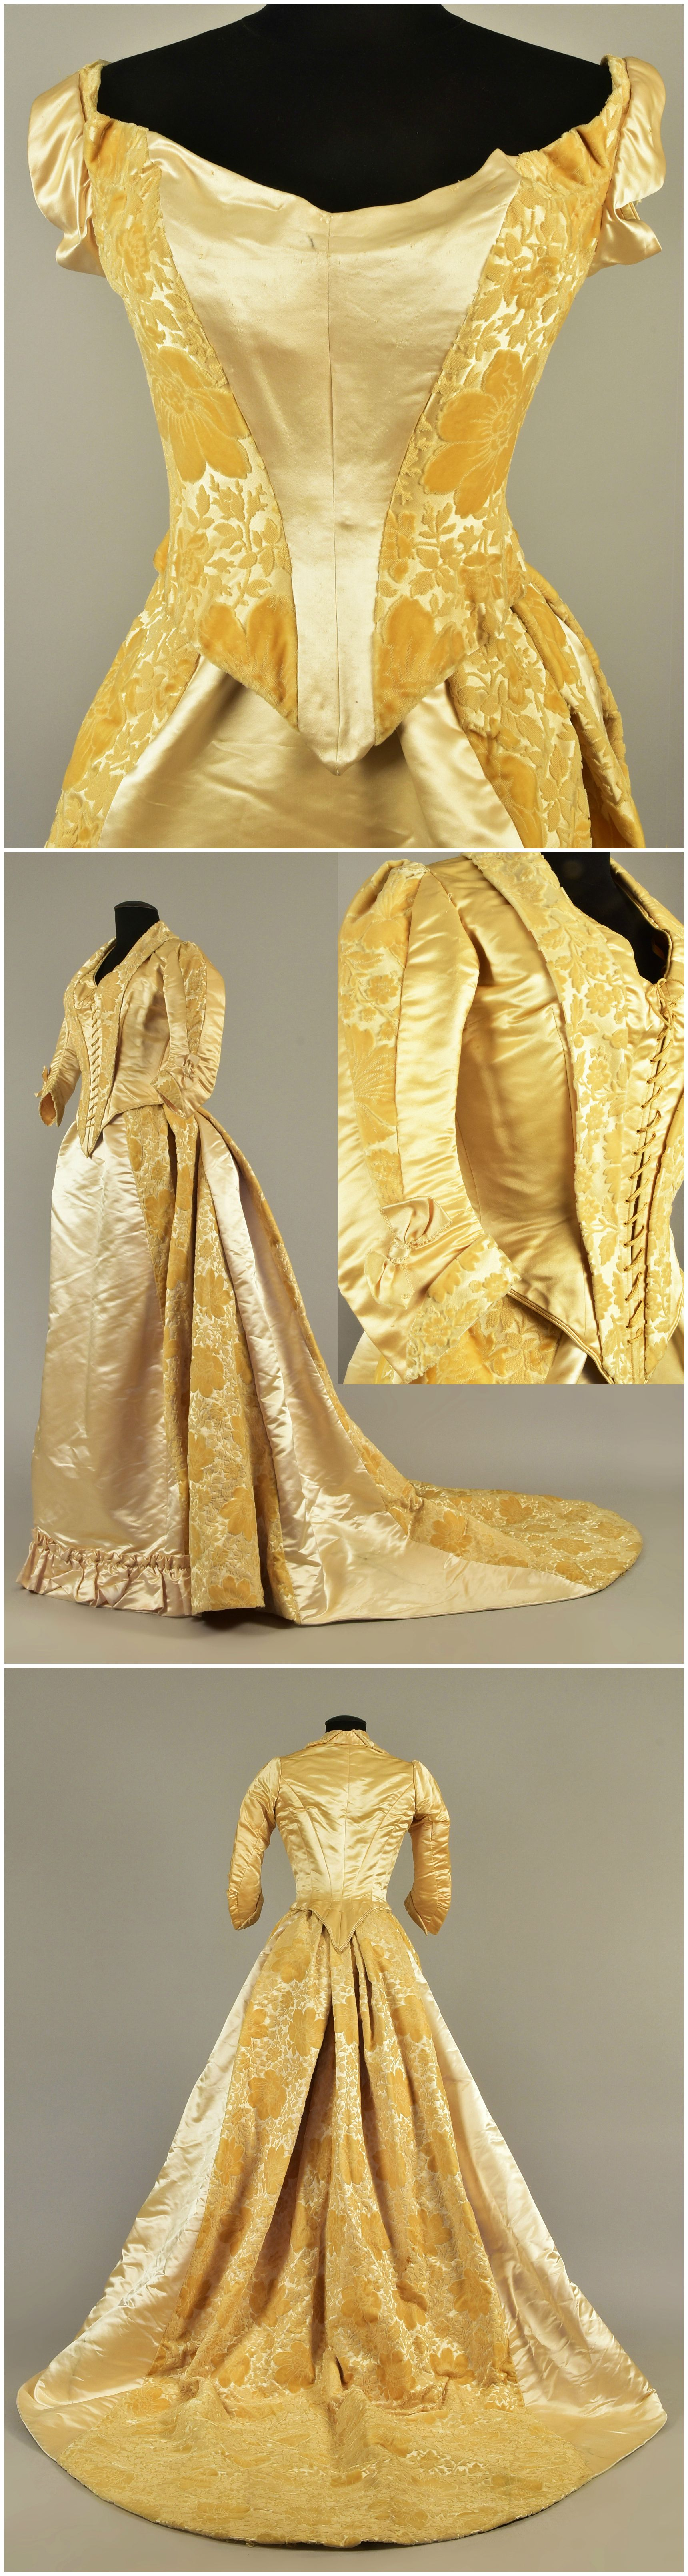 Gown with two bodices belonged to queen louise of denmark